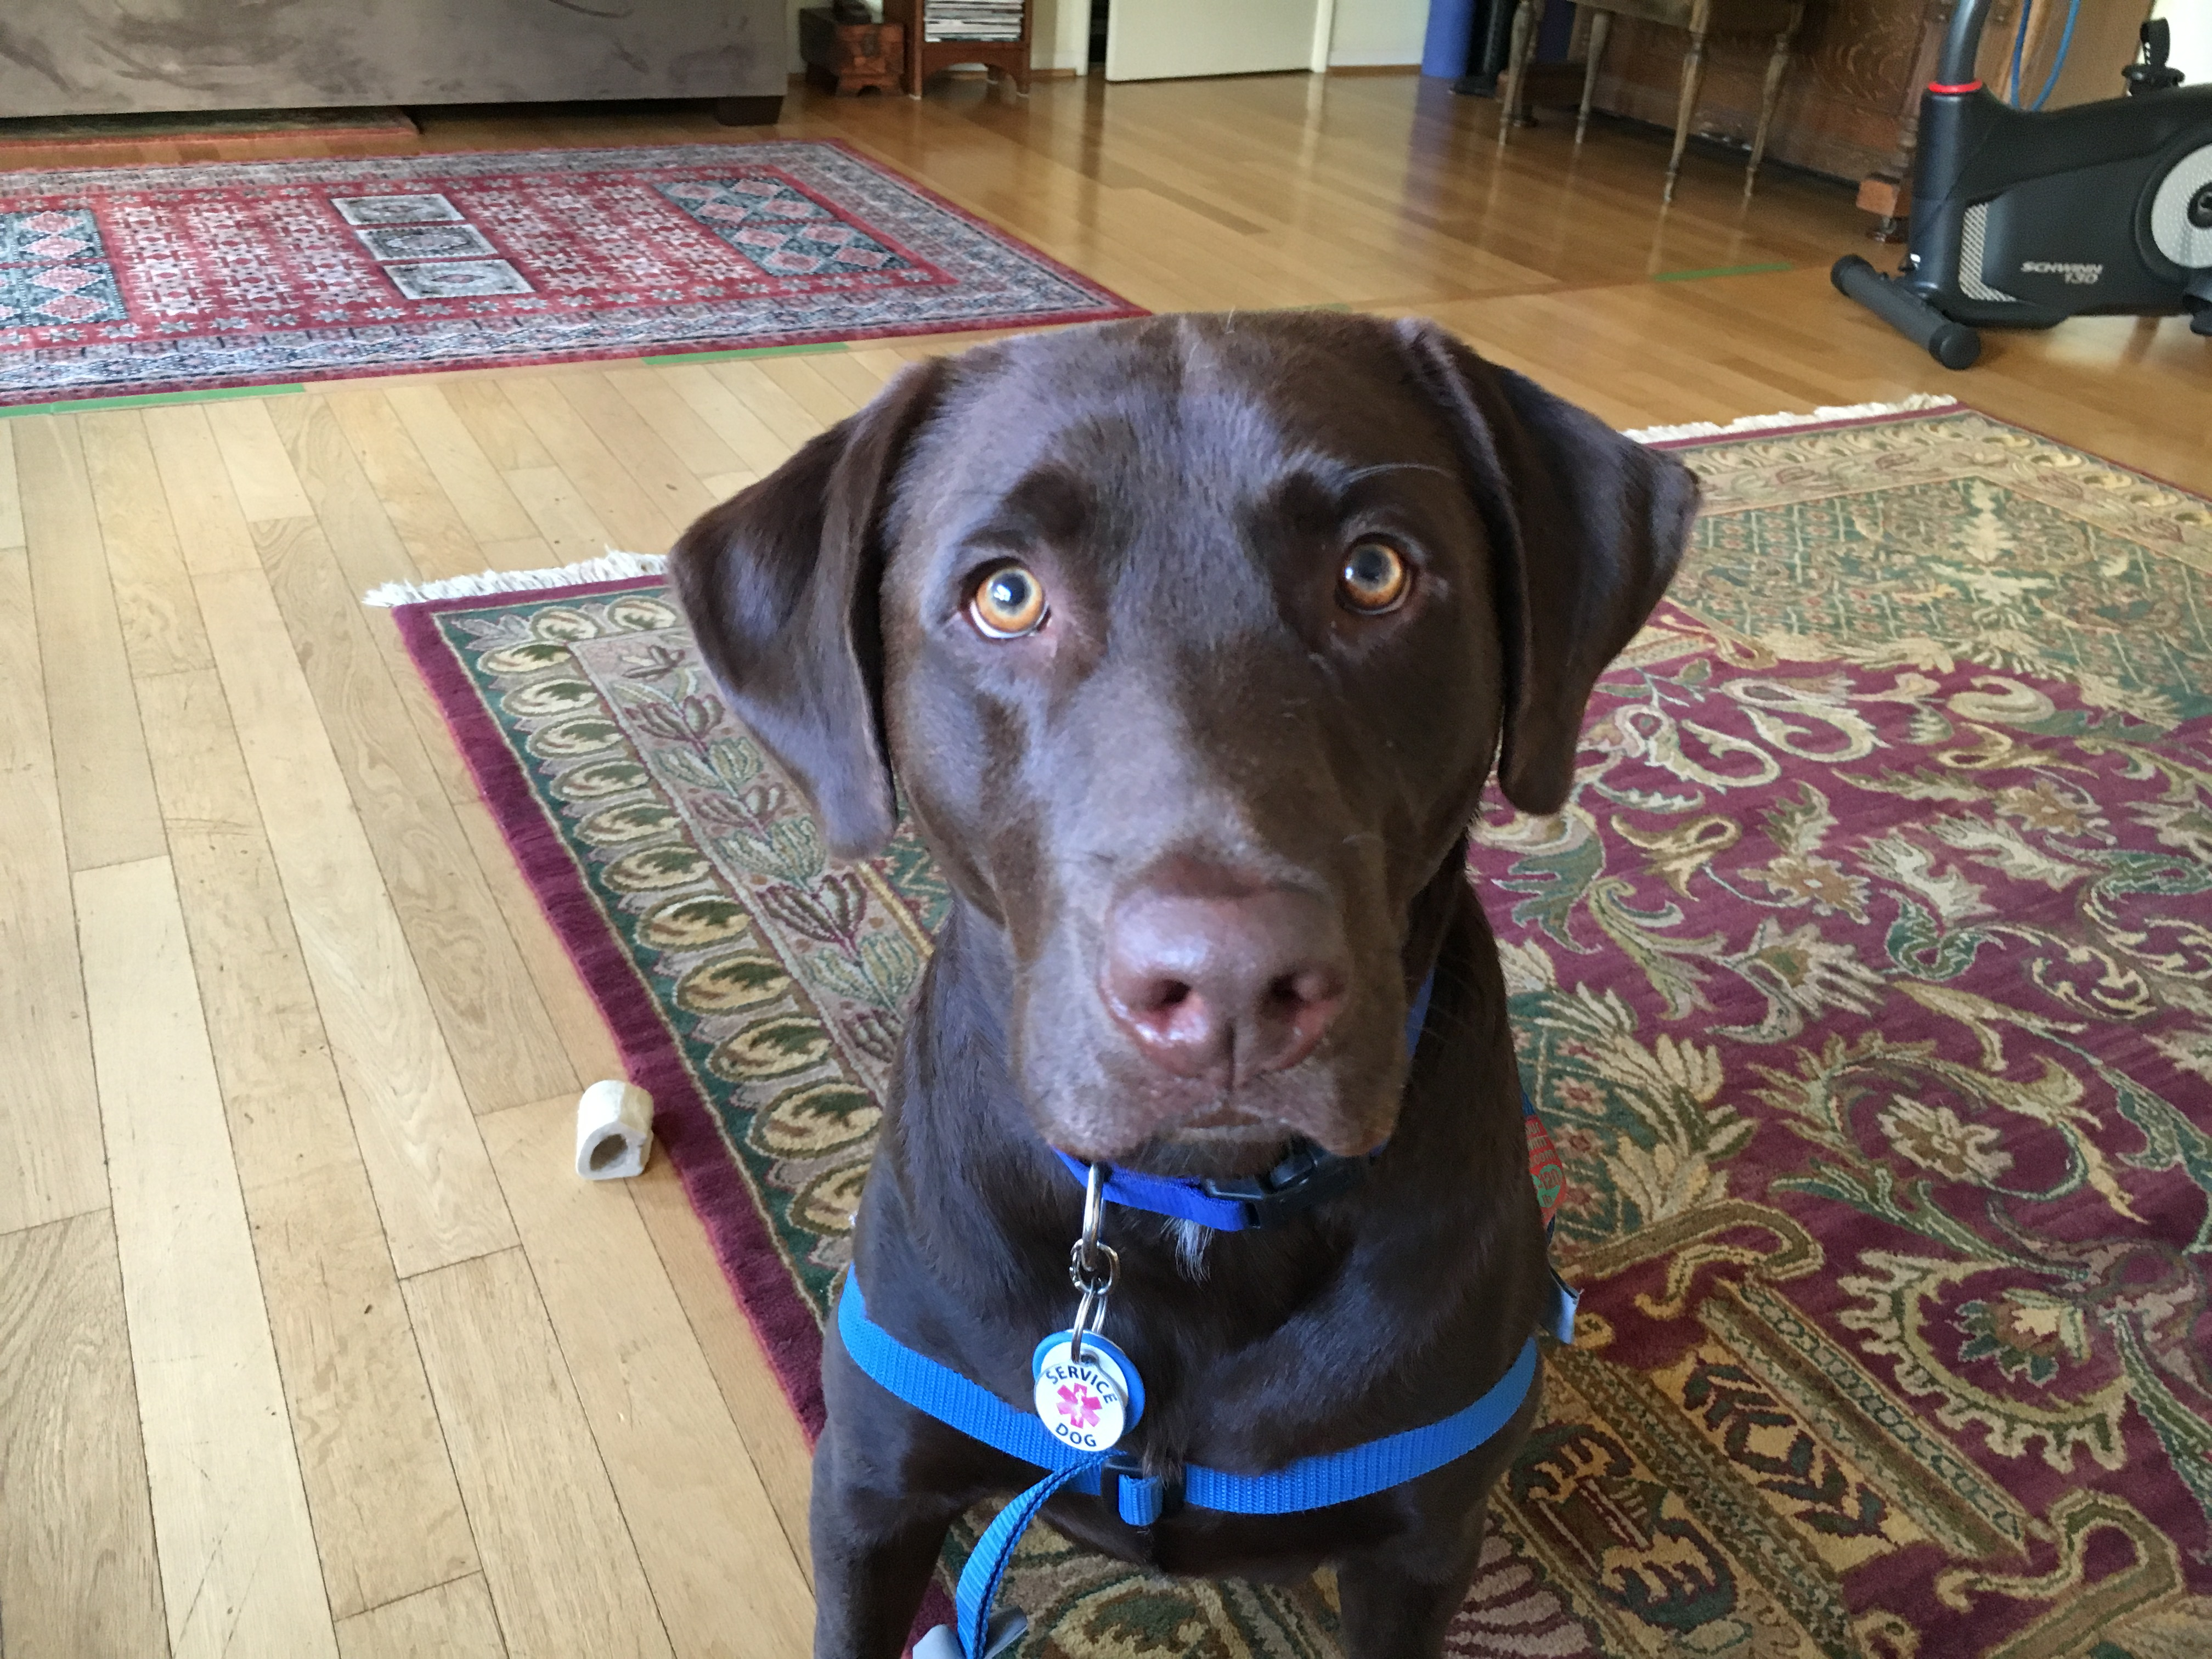 Training A Santa Monica Lab To Stop Reacting To Dogs When On Leash - Dog passes owner returns 2 years